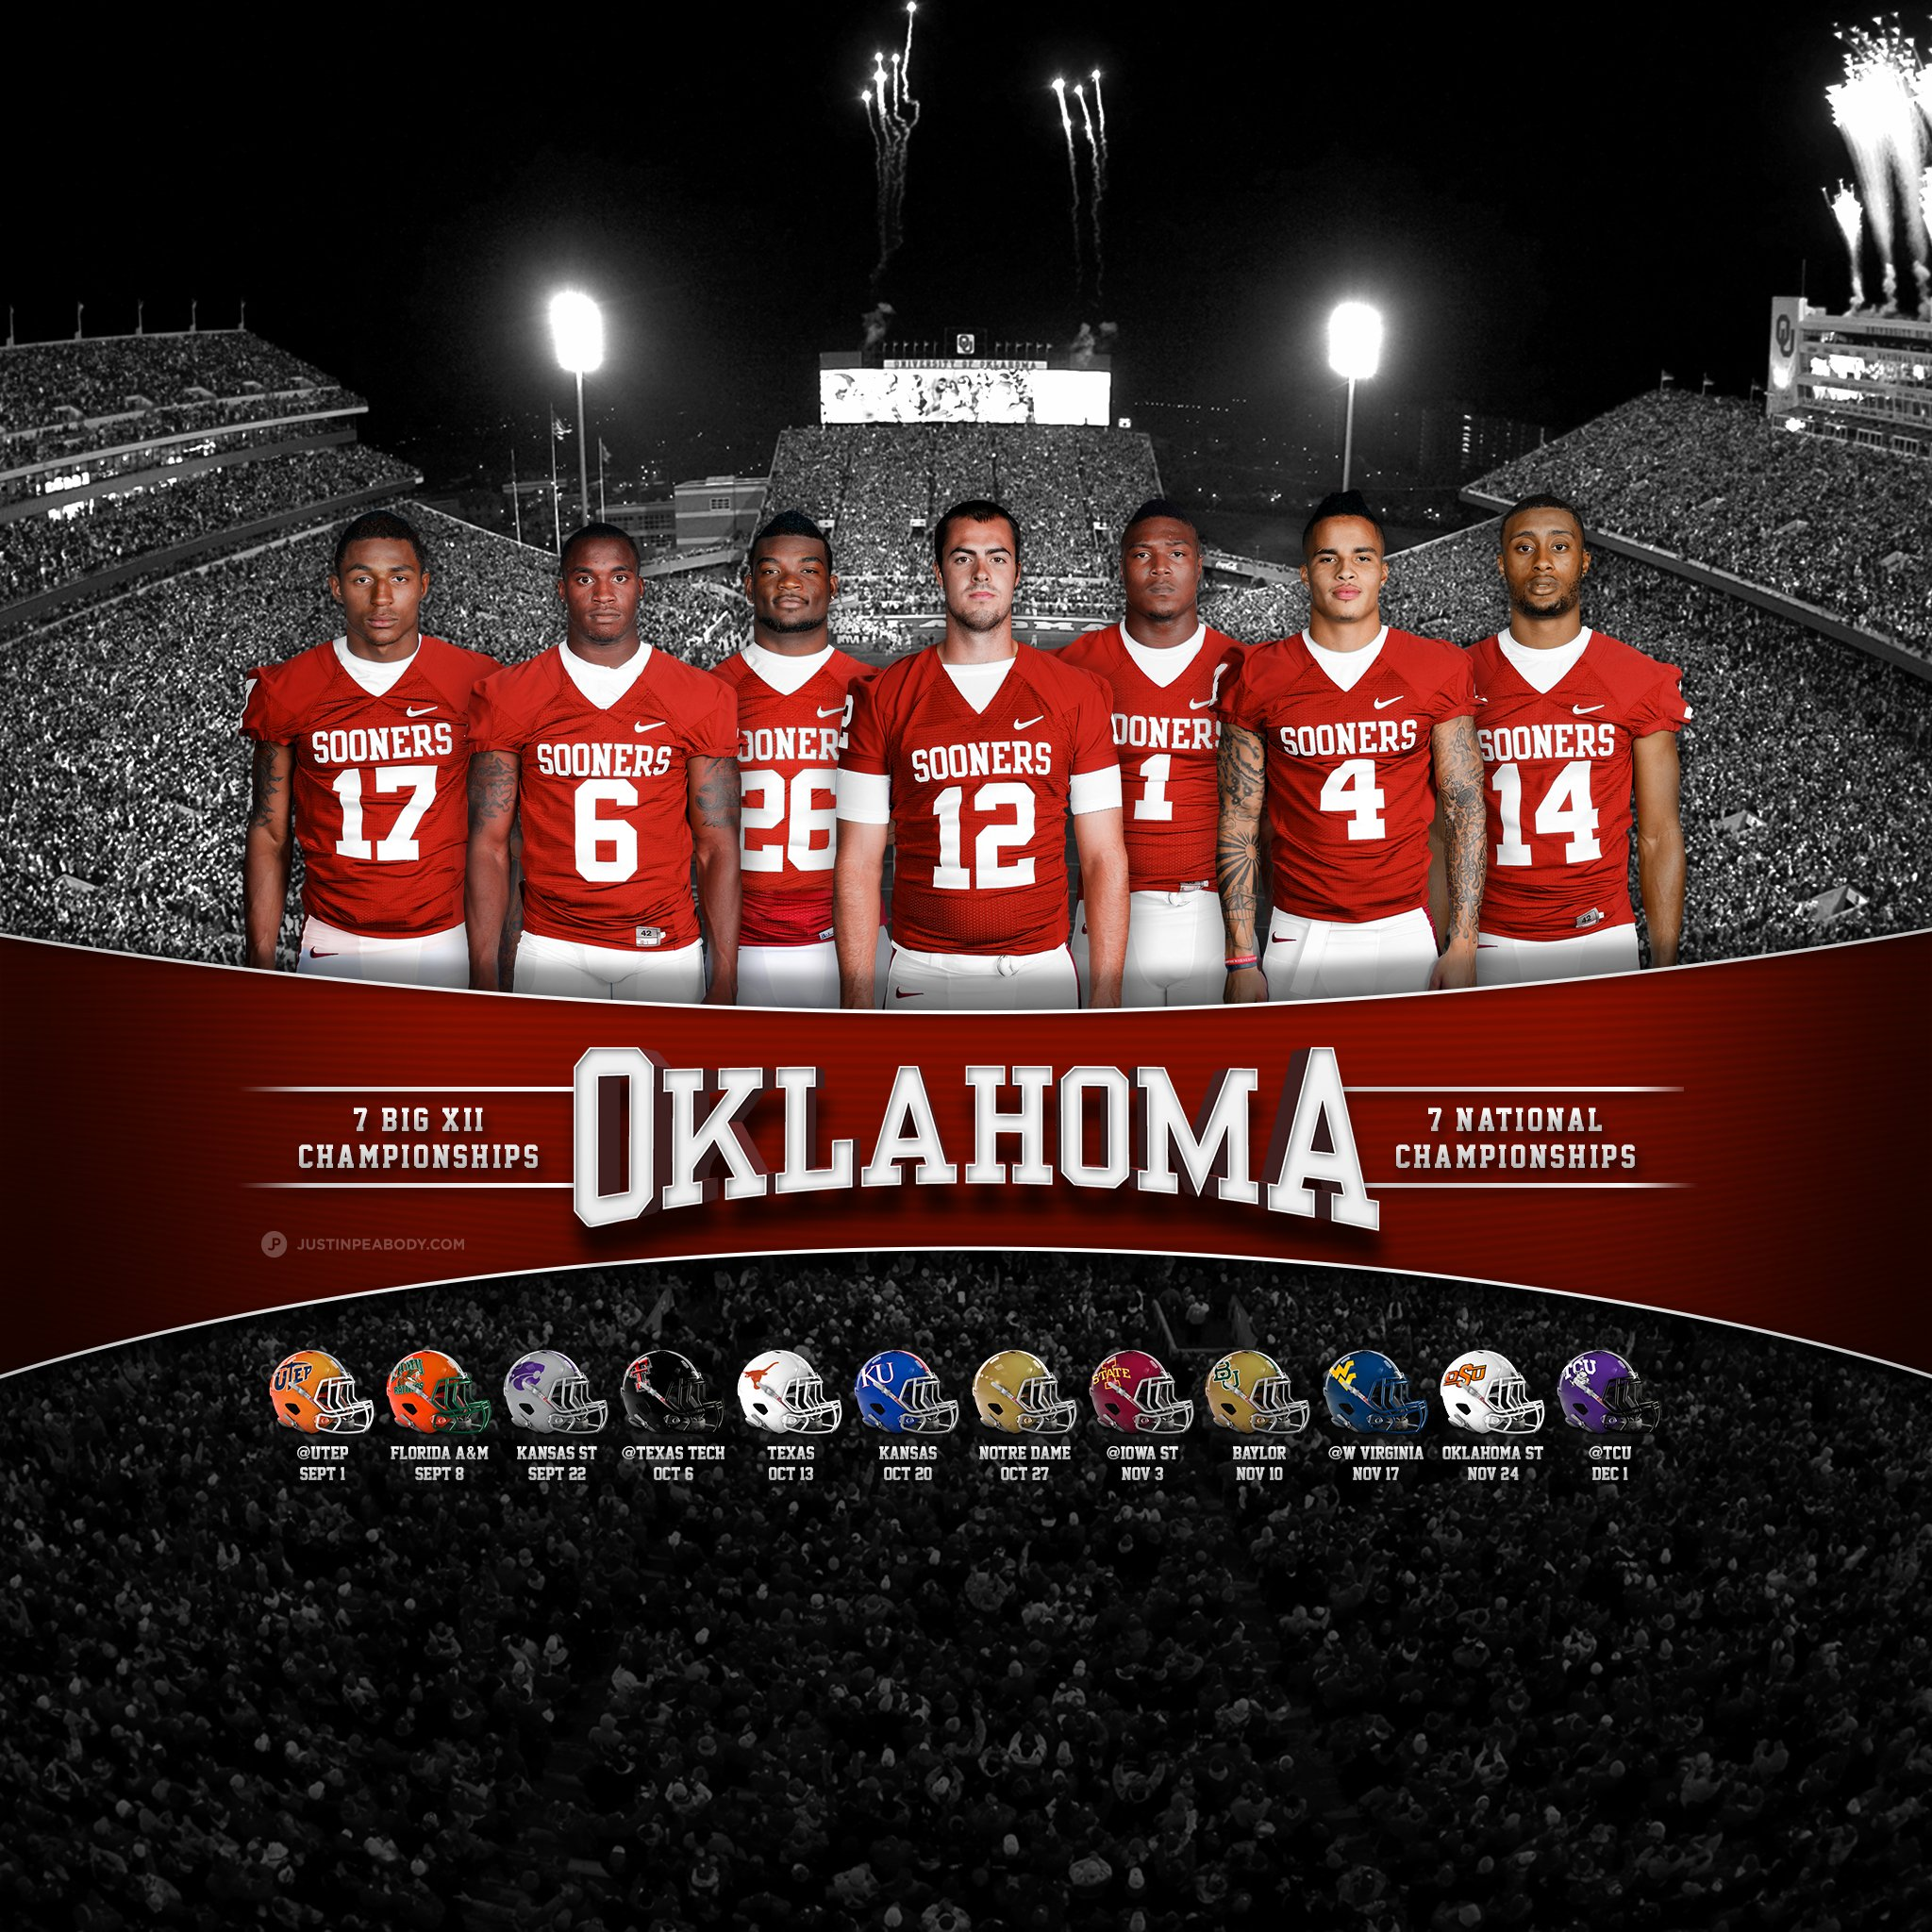 Oklahoma Sooners Football Wallpaper 2013 Ou 12 ipadjpgdisposition 2048x2048